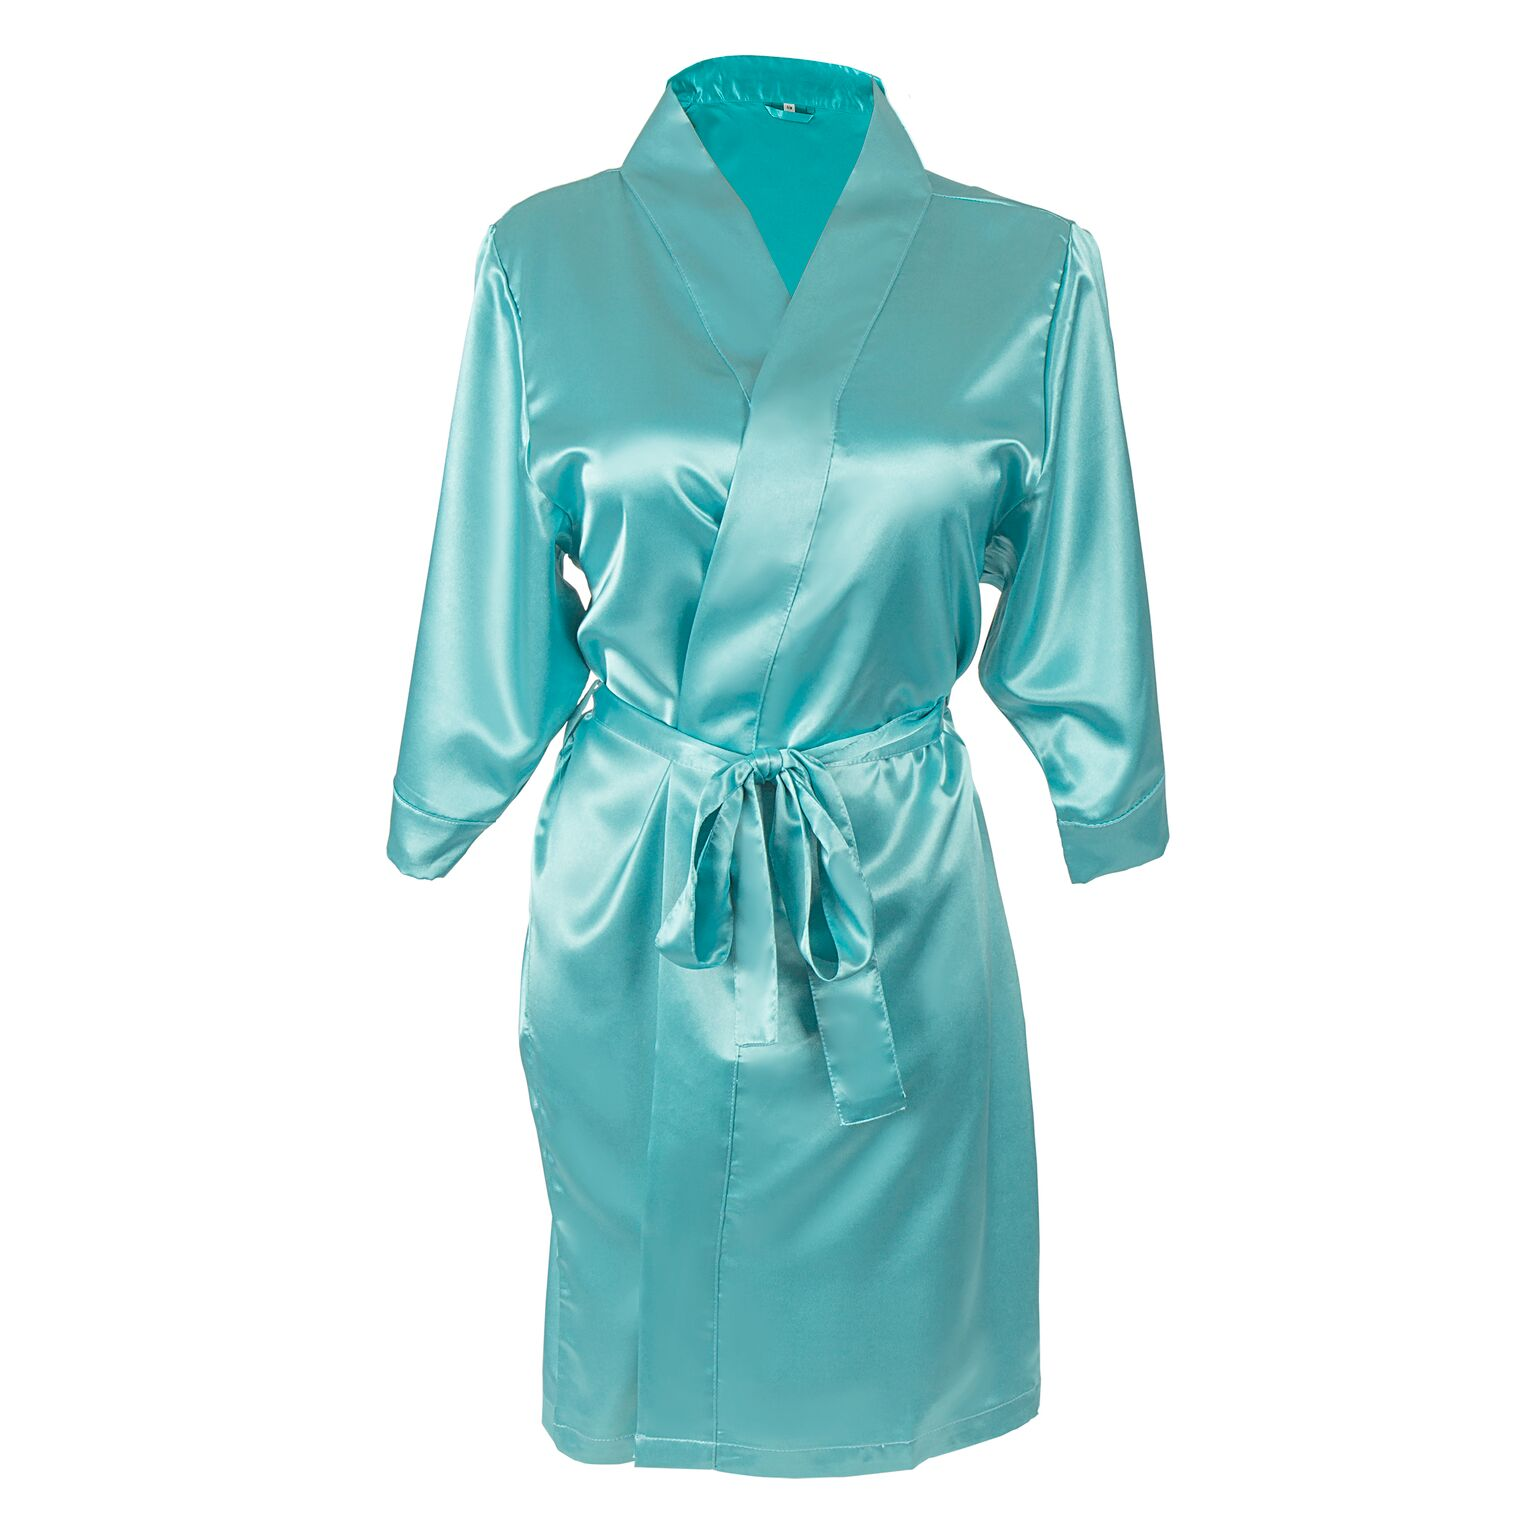 Cathys Concepts 1804A-SM-ST Team Bride Satin Robe, Aqua - Small & Medium